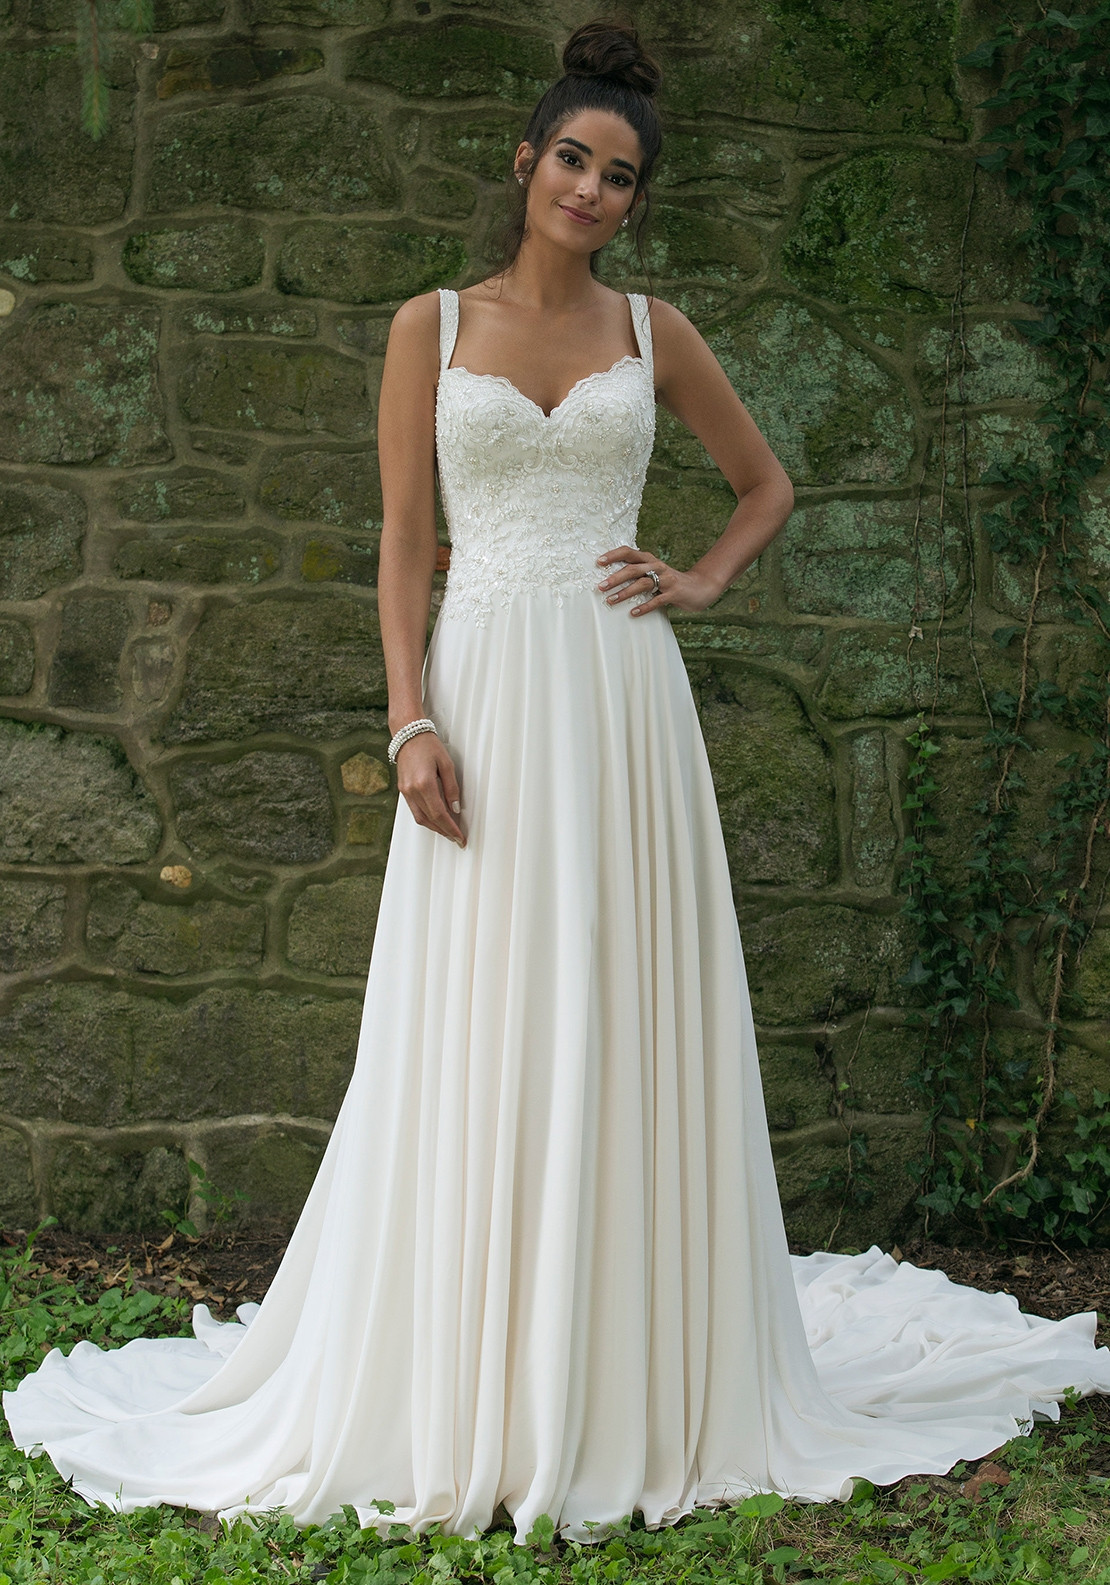 Sincerity 44067 Wedding Dress UK Size 18, Ivory/Silver/Nude